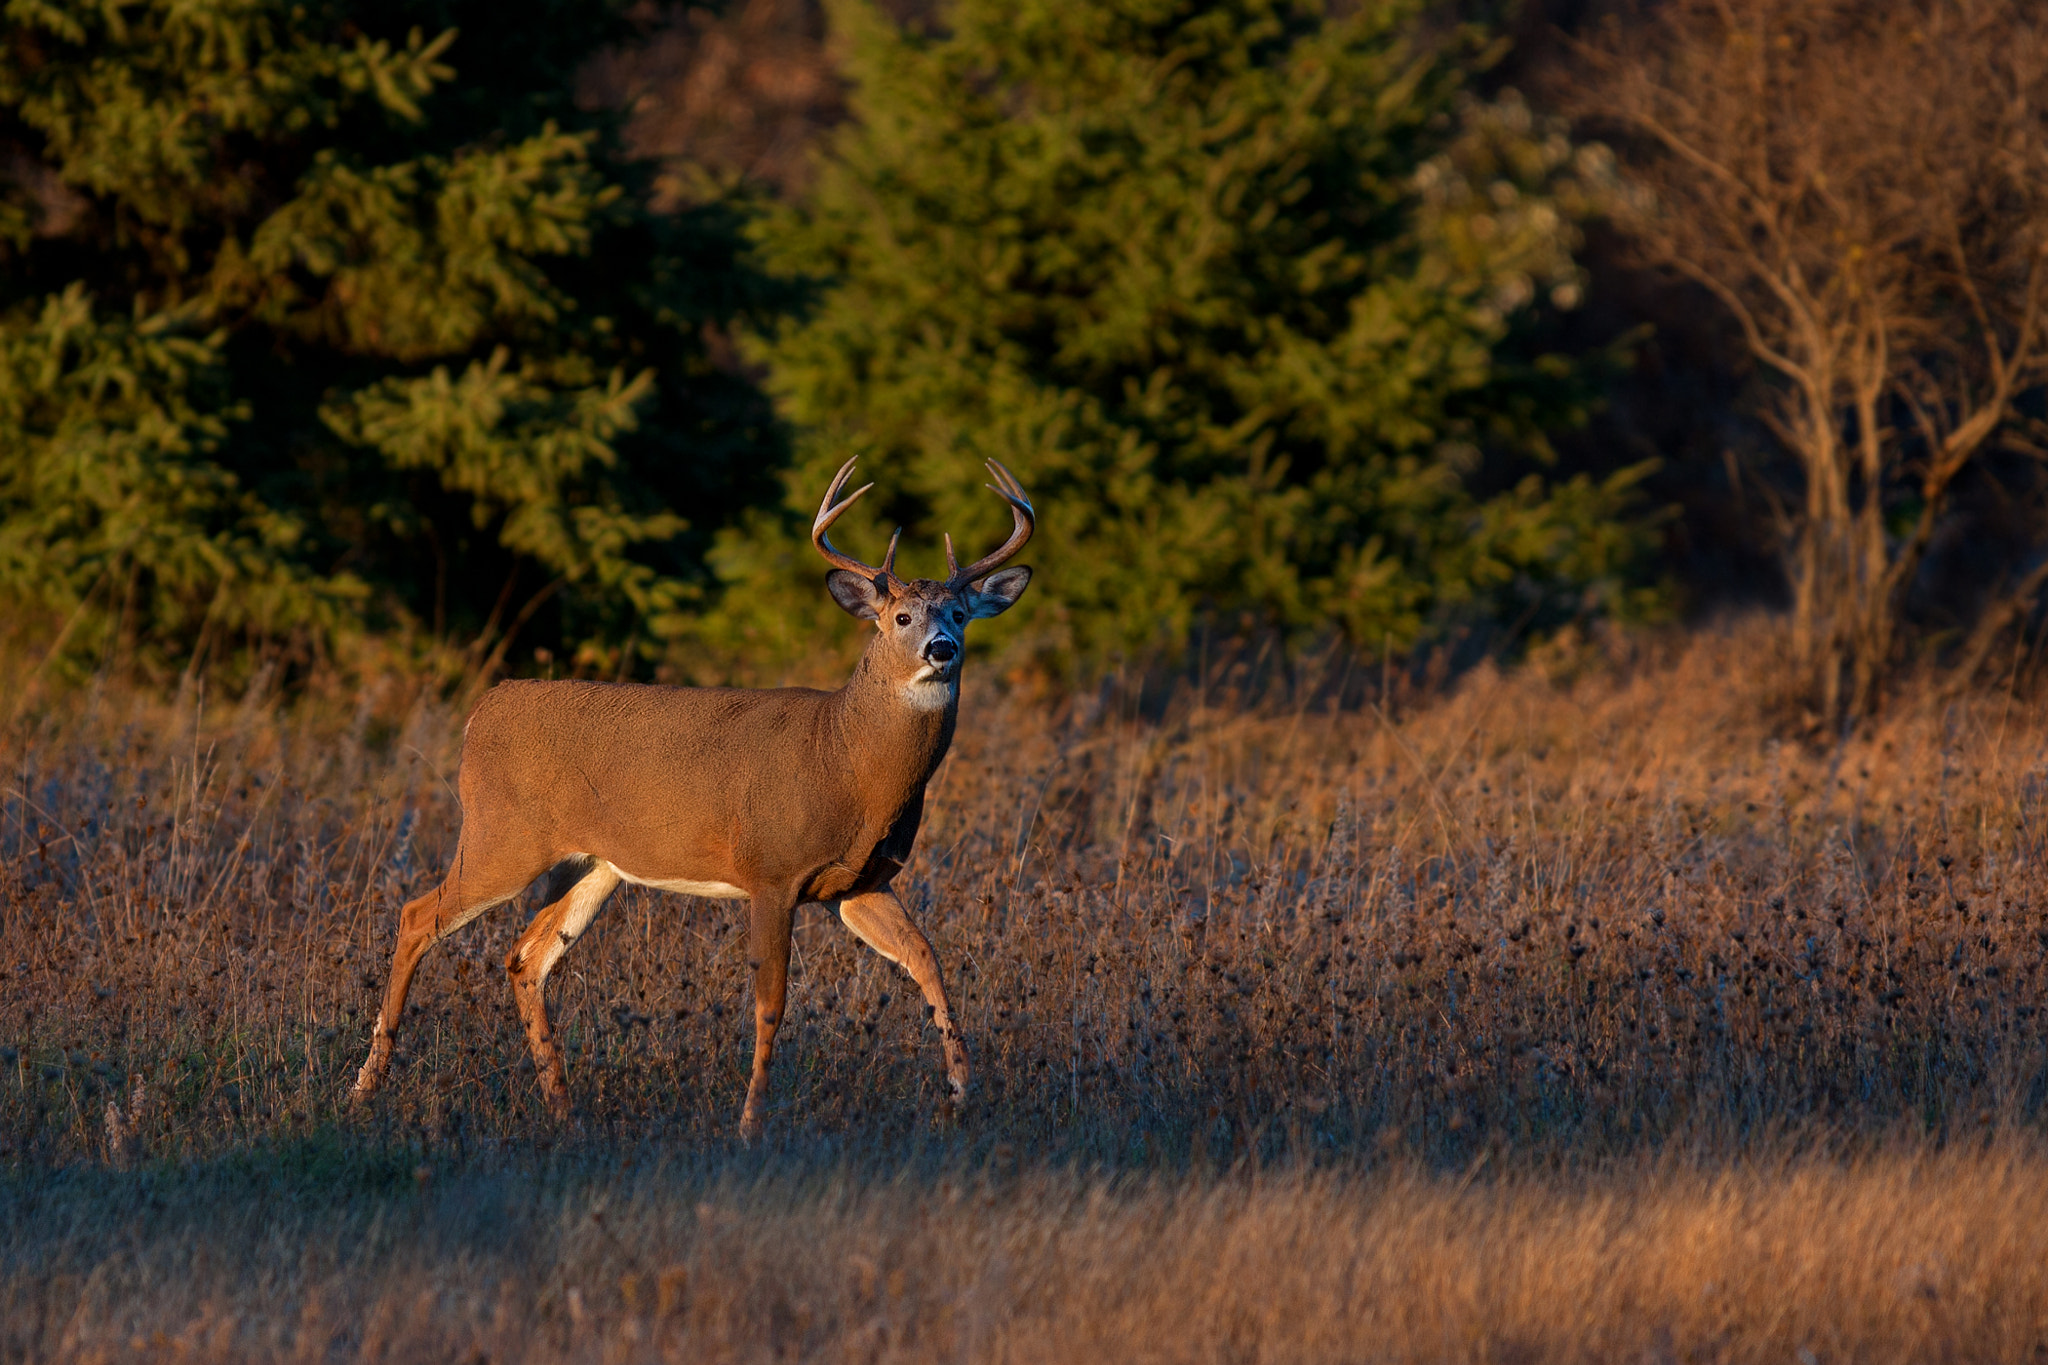 Photograph In the spotlight - White-tailed deer by Jim Cumming on 500px